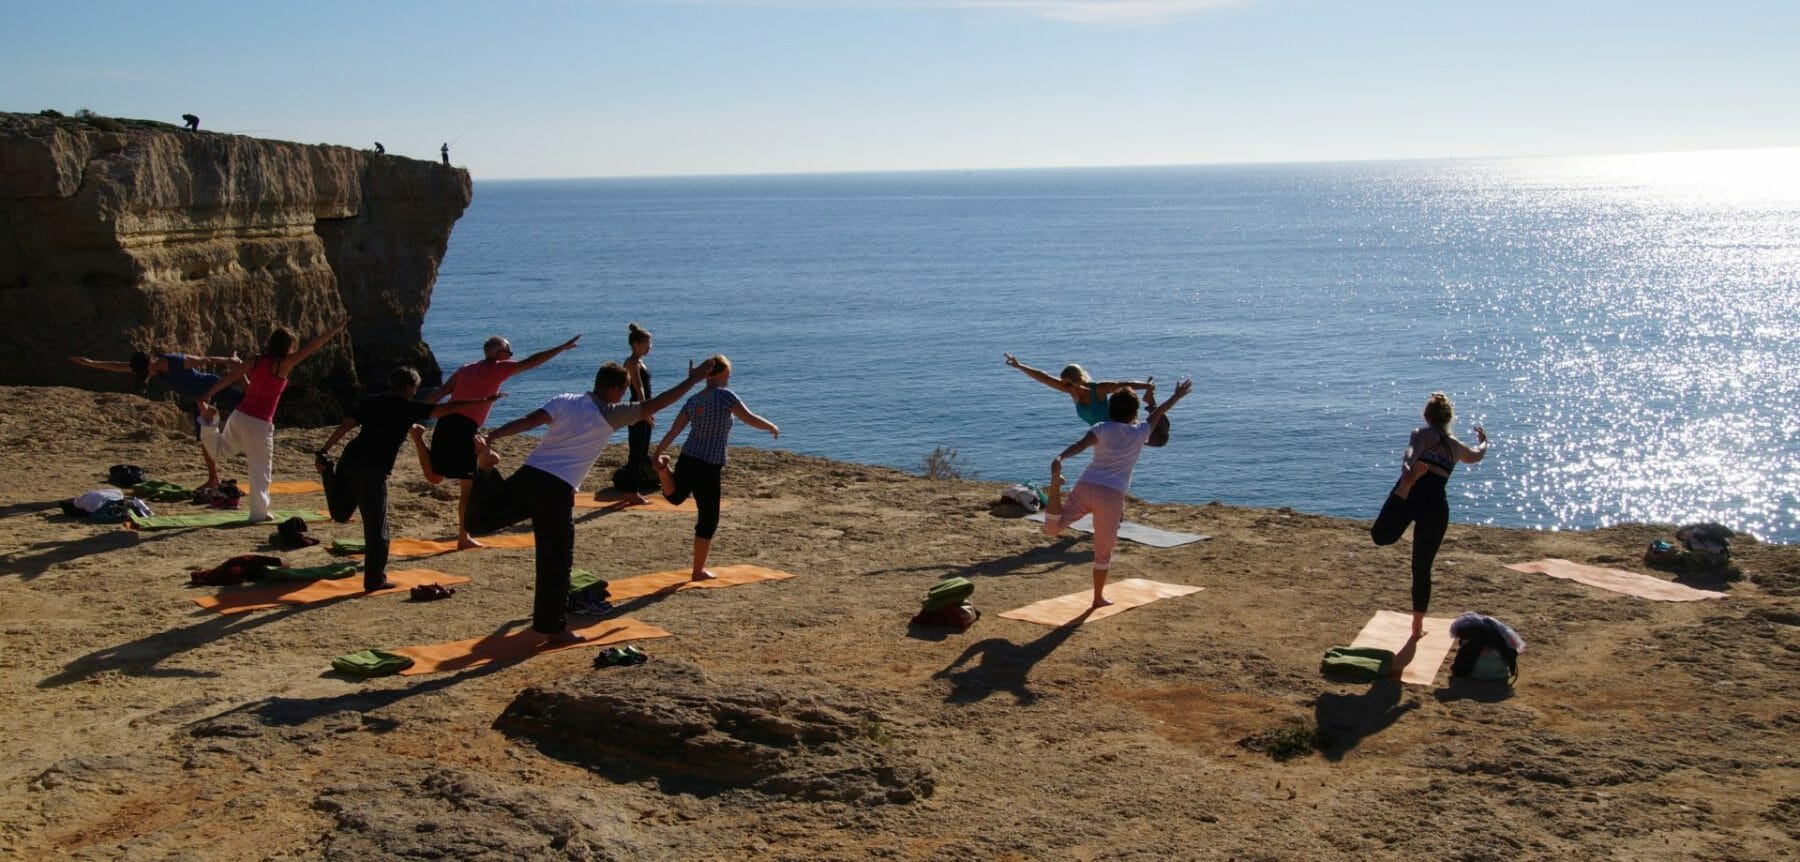 Outdoor yoga places on the cliffs around Baia Cristal